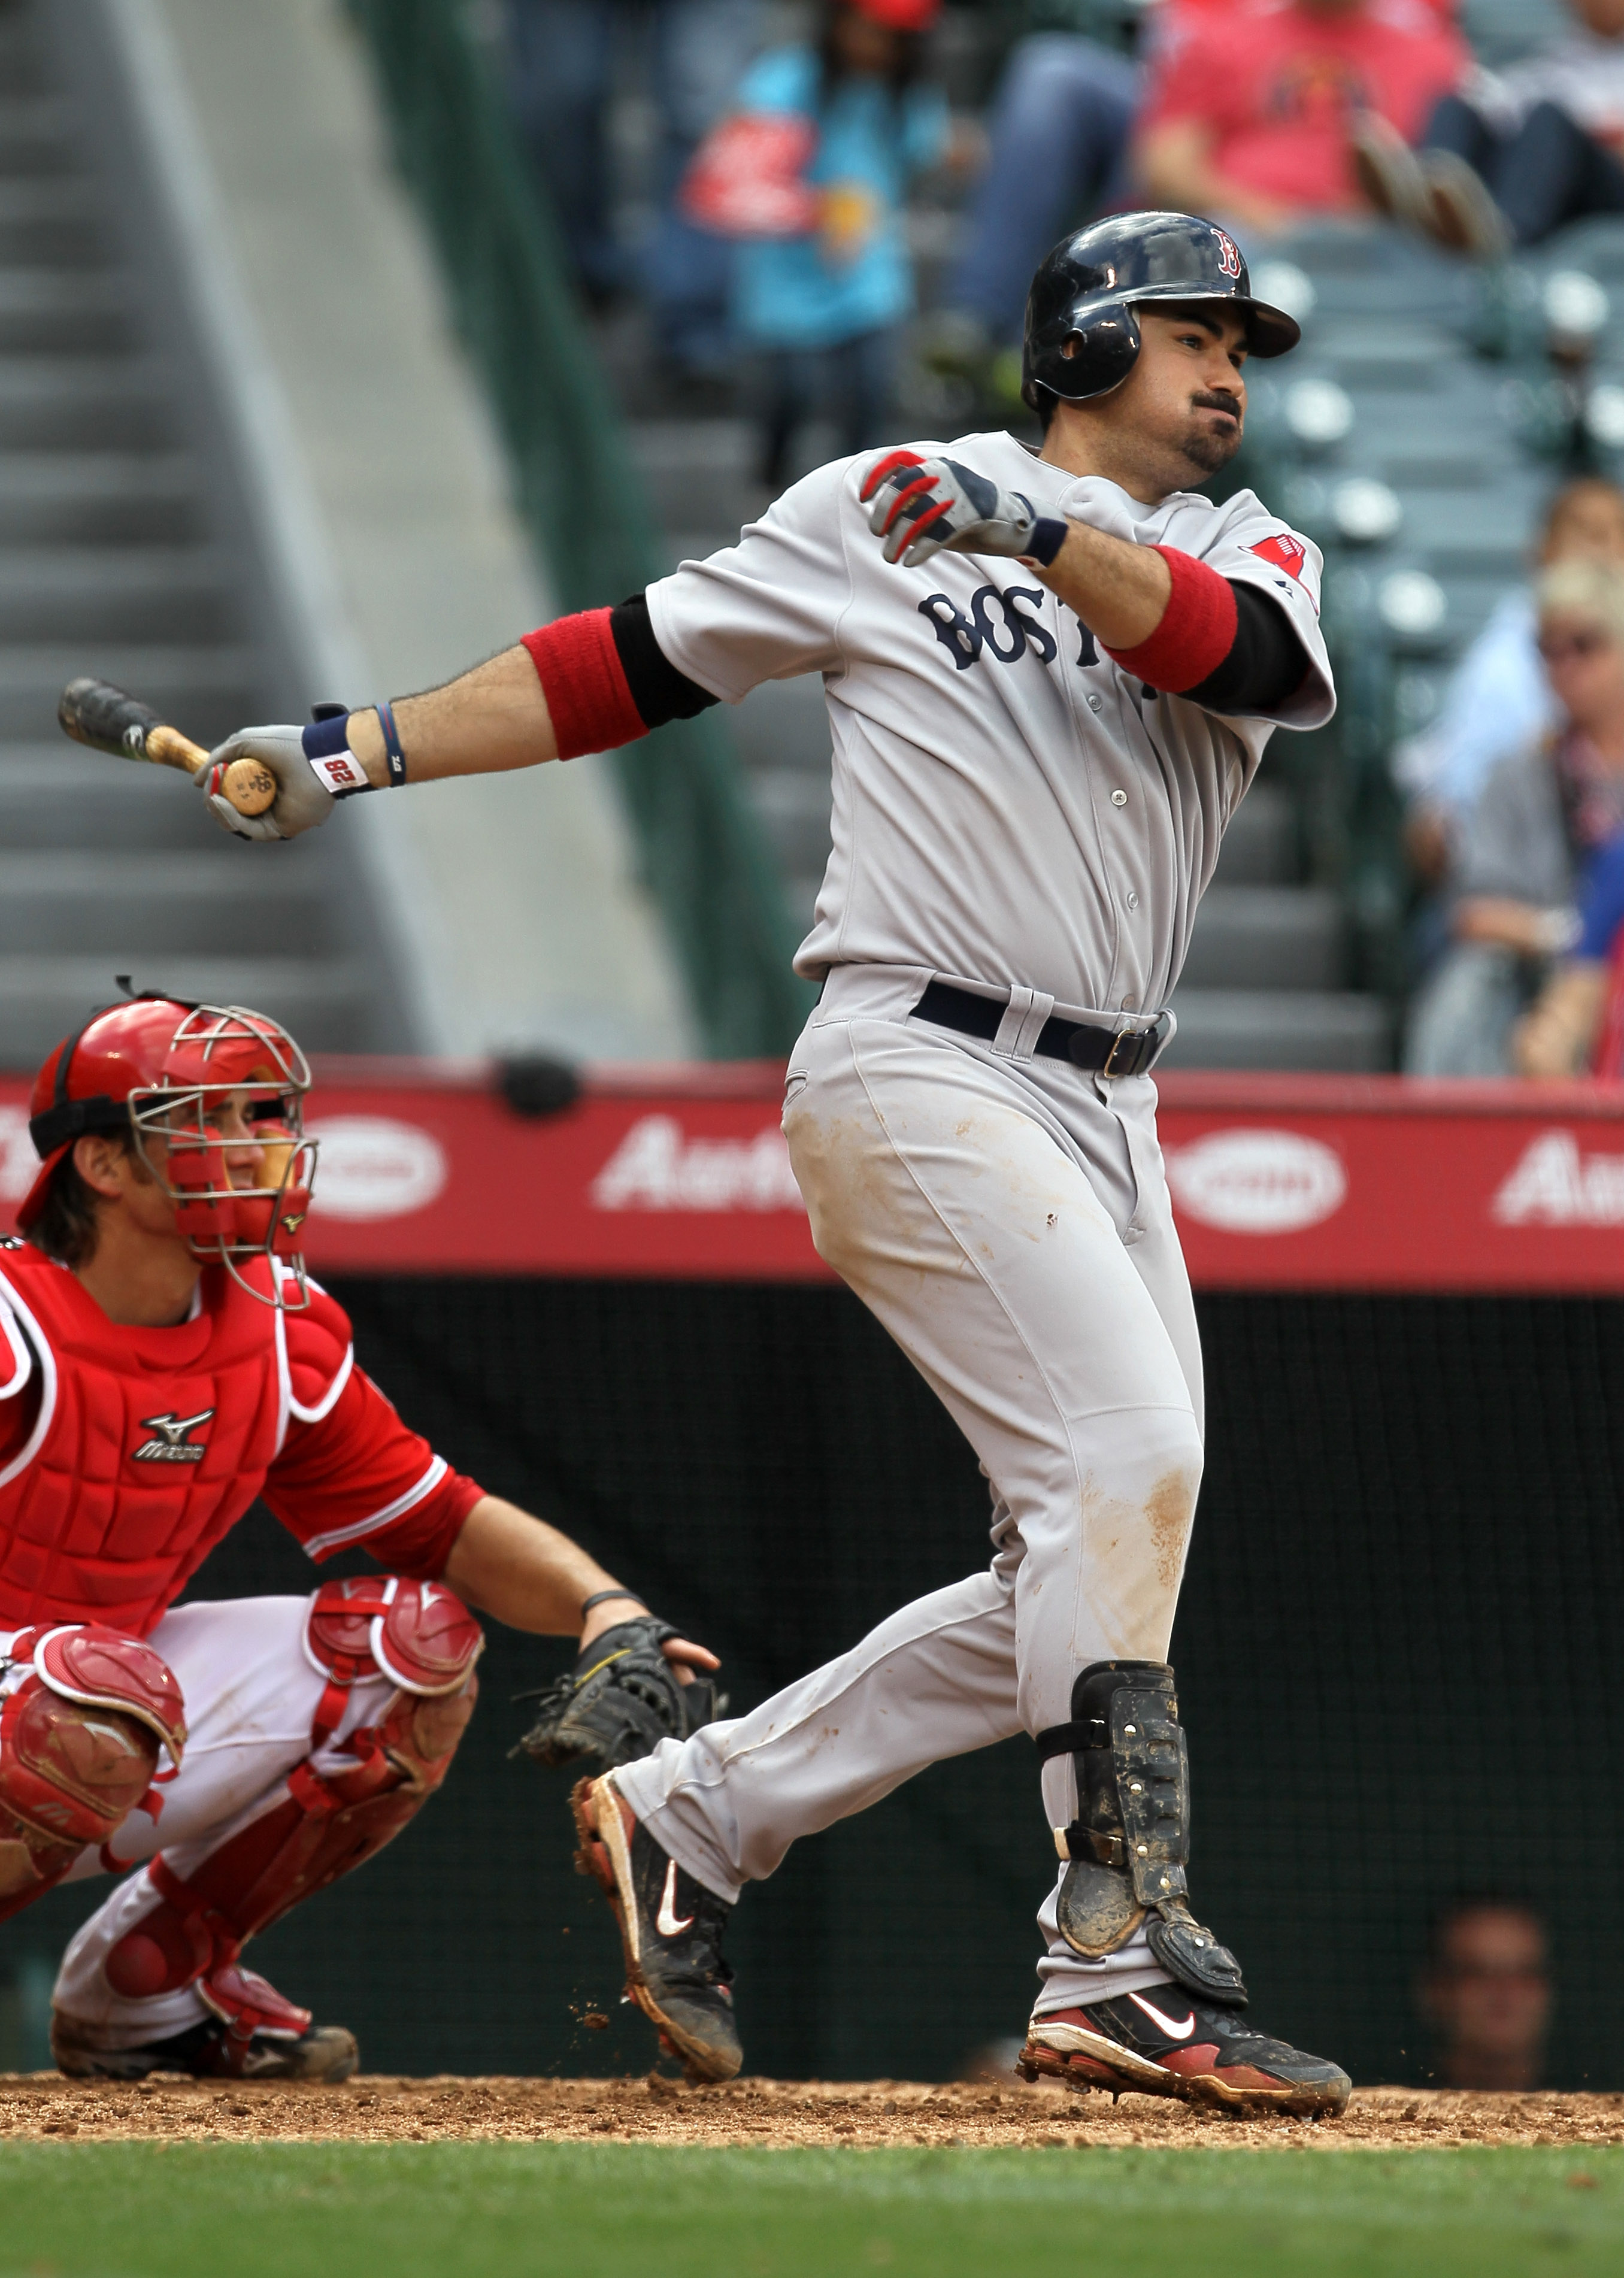 ANAHEIM, CA - APRIL 24:  Adrian Gonzalez #28 of the Boston Red Sox hits a single in the ninth inning against the Los Angeles Angels of Anaheim on April 24, 2011 at Angel Stadium in Anaheim, California.  The Red Sox won 7-0.  (Photo by Stephen Dunn/Getty I